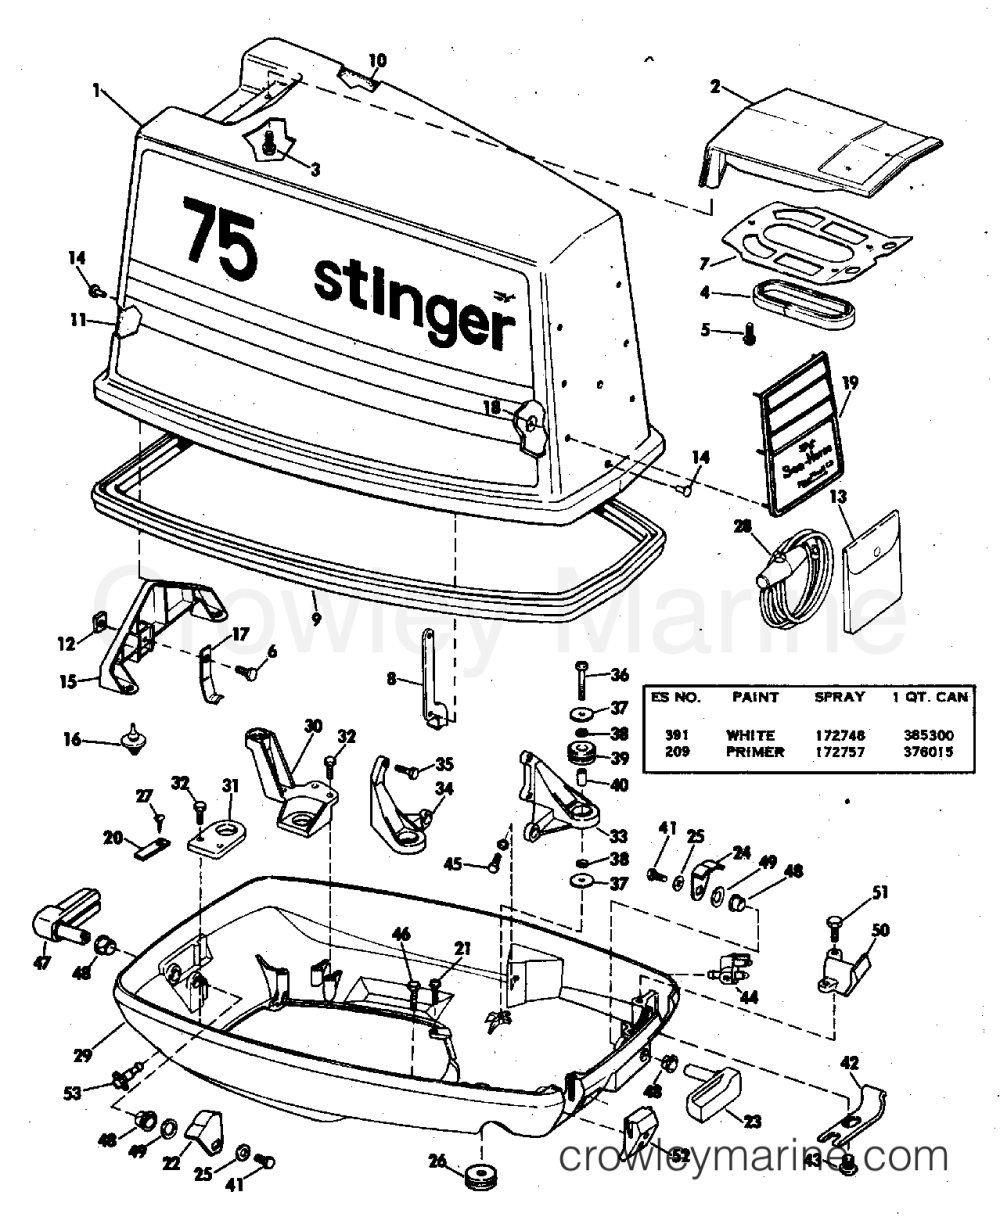 medium resolution of diagram of 1978 70el78c johnson outboard motor cover diagram andmotor cover 1978 johnson outboards 70 70el78c